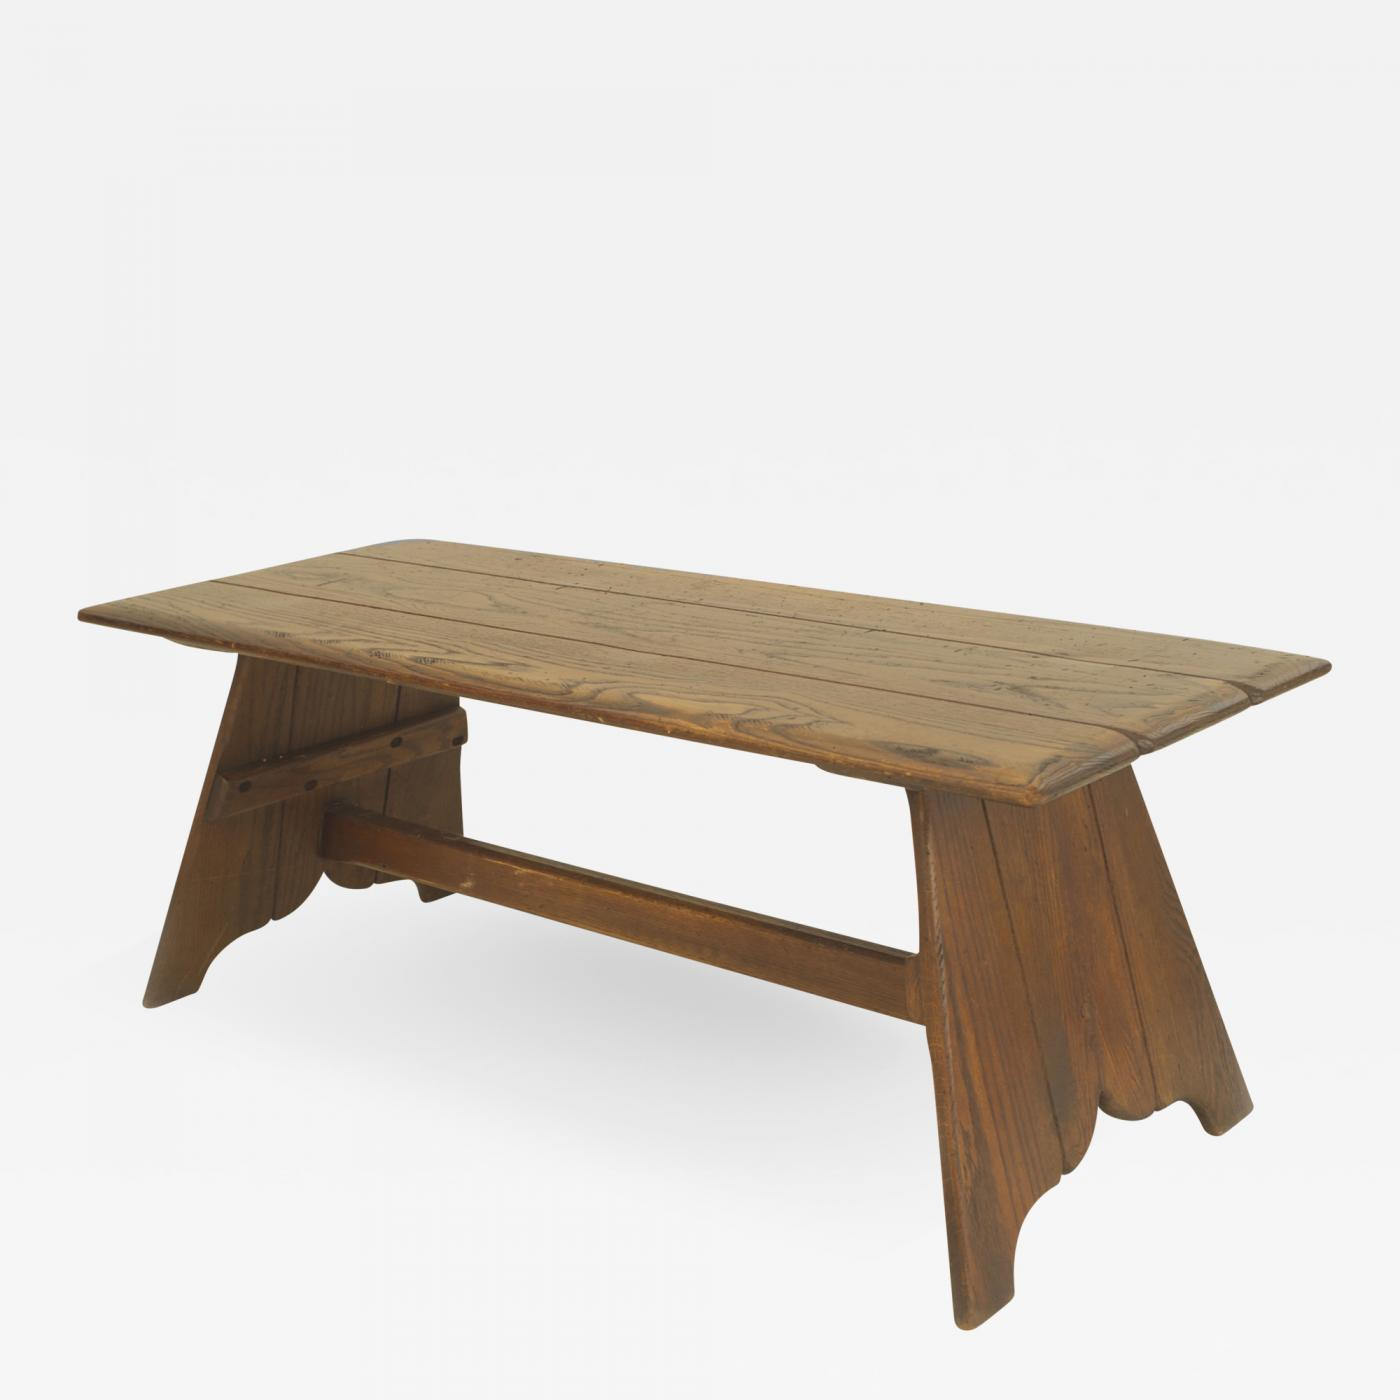 Listings / Furniture / Tables / Coffee Tables · Old Hickory Furniture Co  American Rustic ...